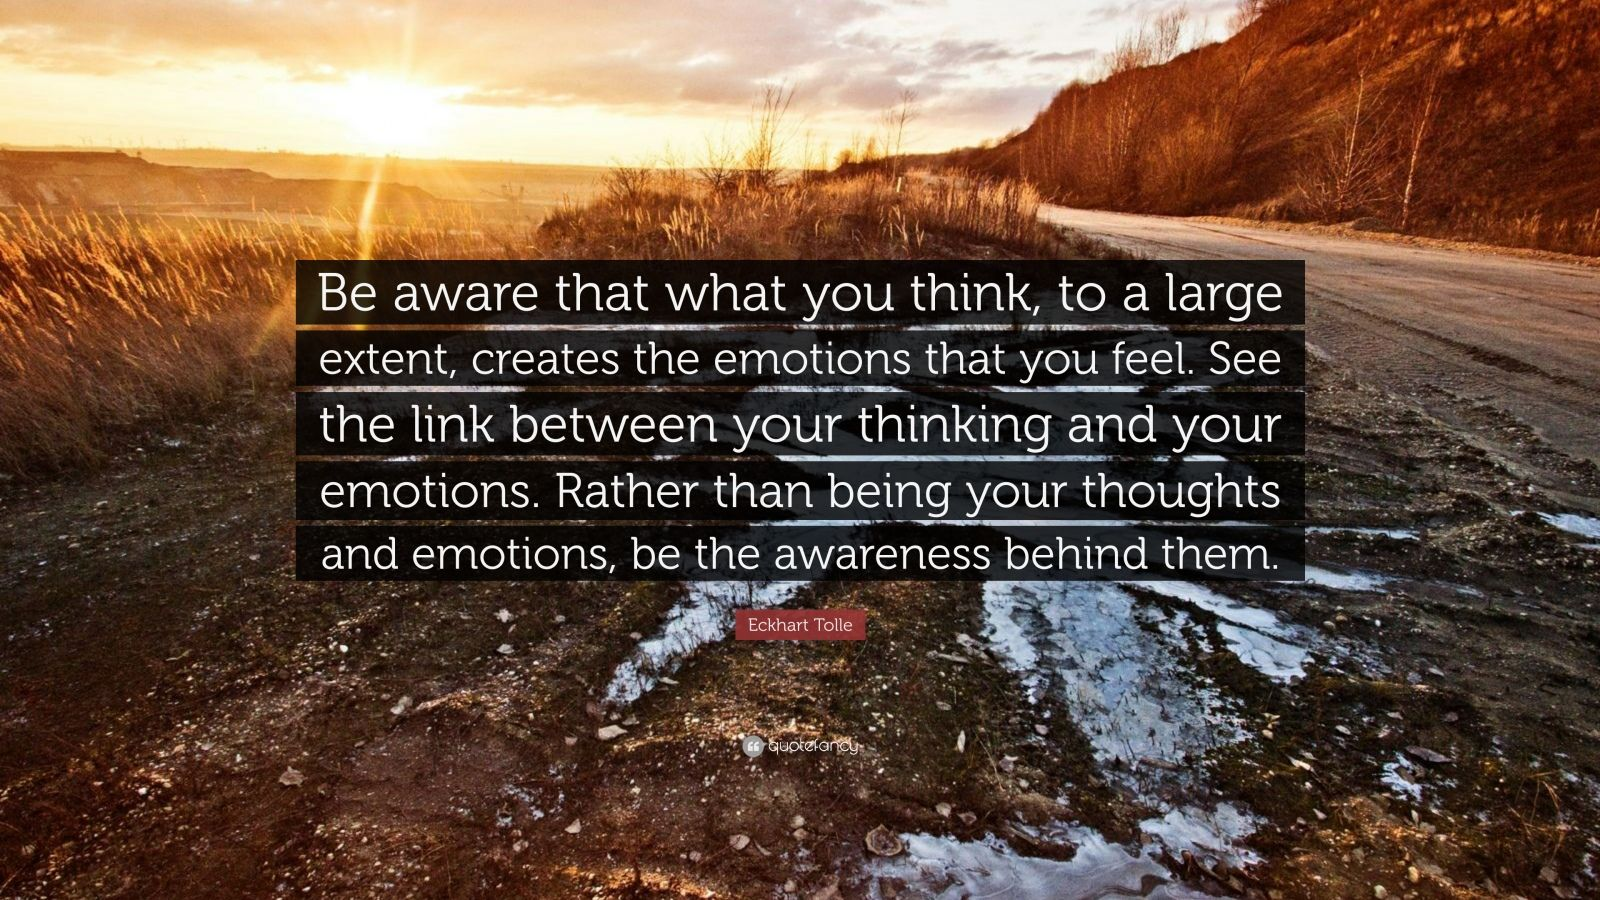 "Eckhart Tolle Quote: ""Be aware that what you think, to a large extent, creates the emotions that you feel. See the link between your thinking and your emotions. Rather than being your thoughts and emotions, be the awareness behind them."""